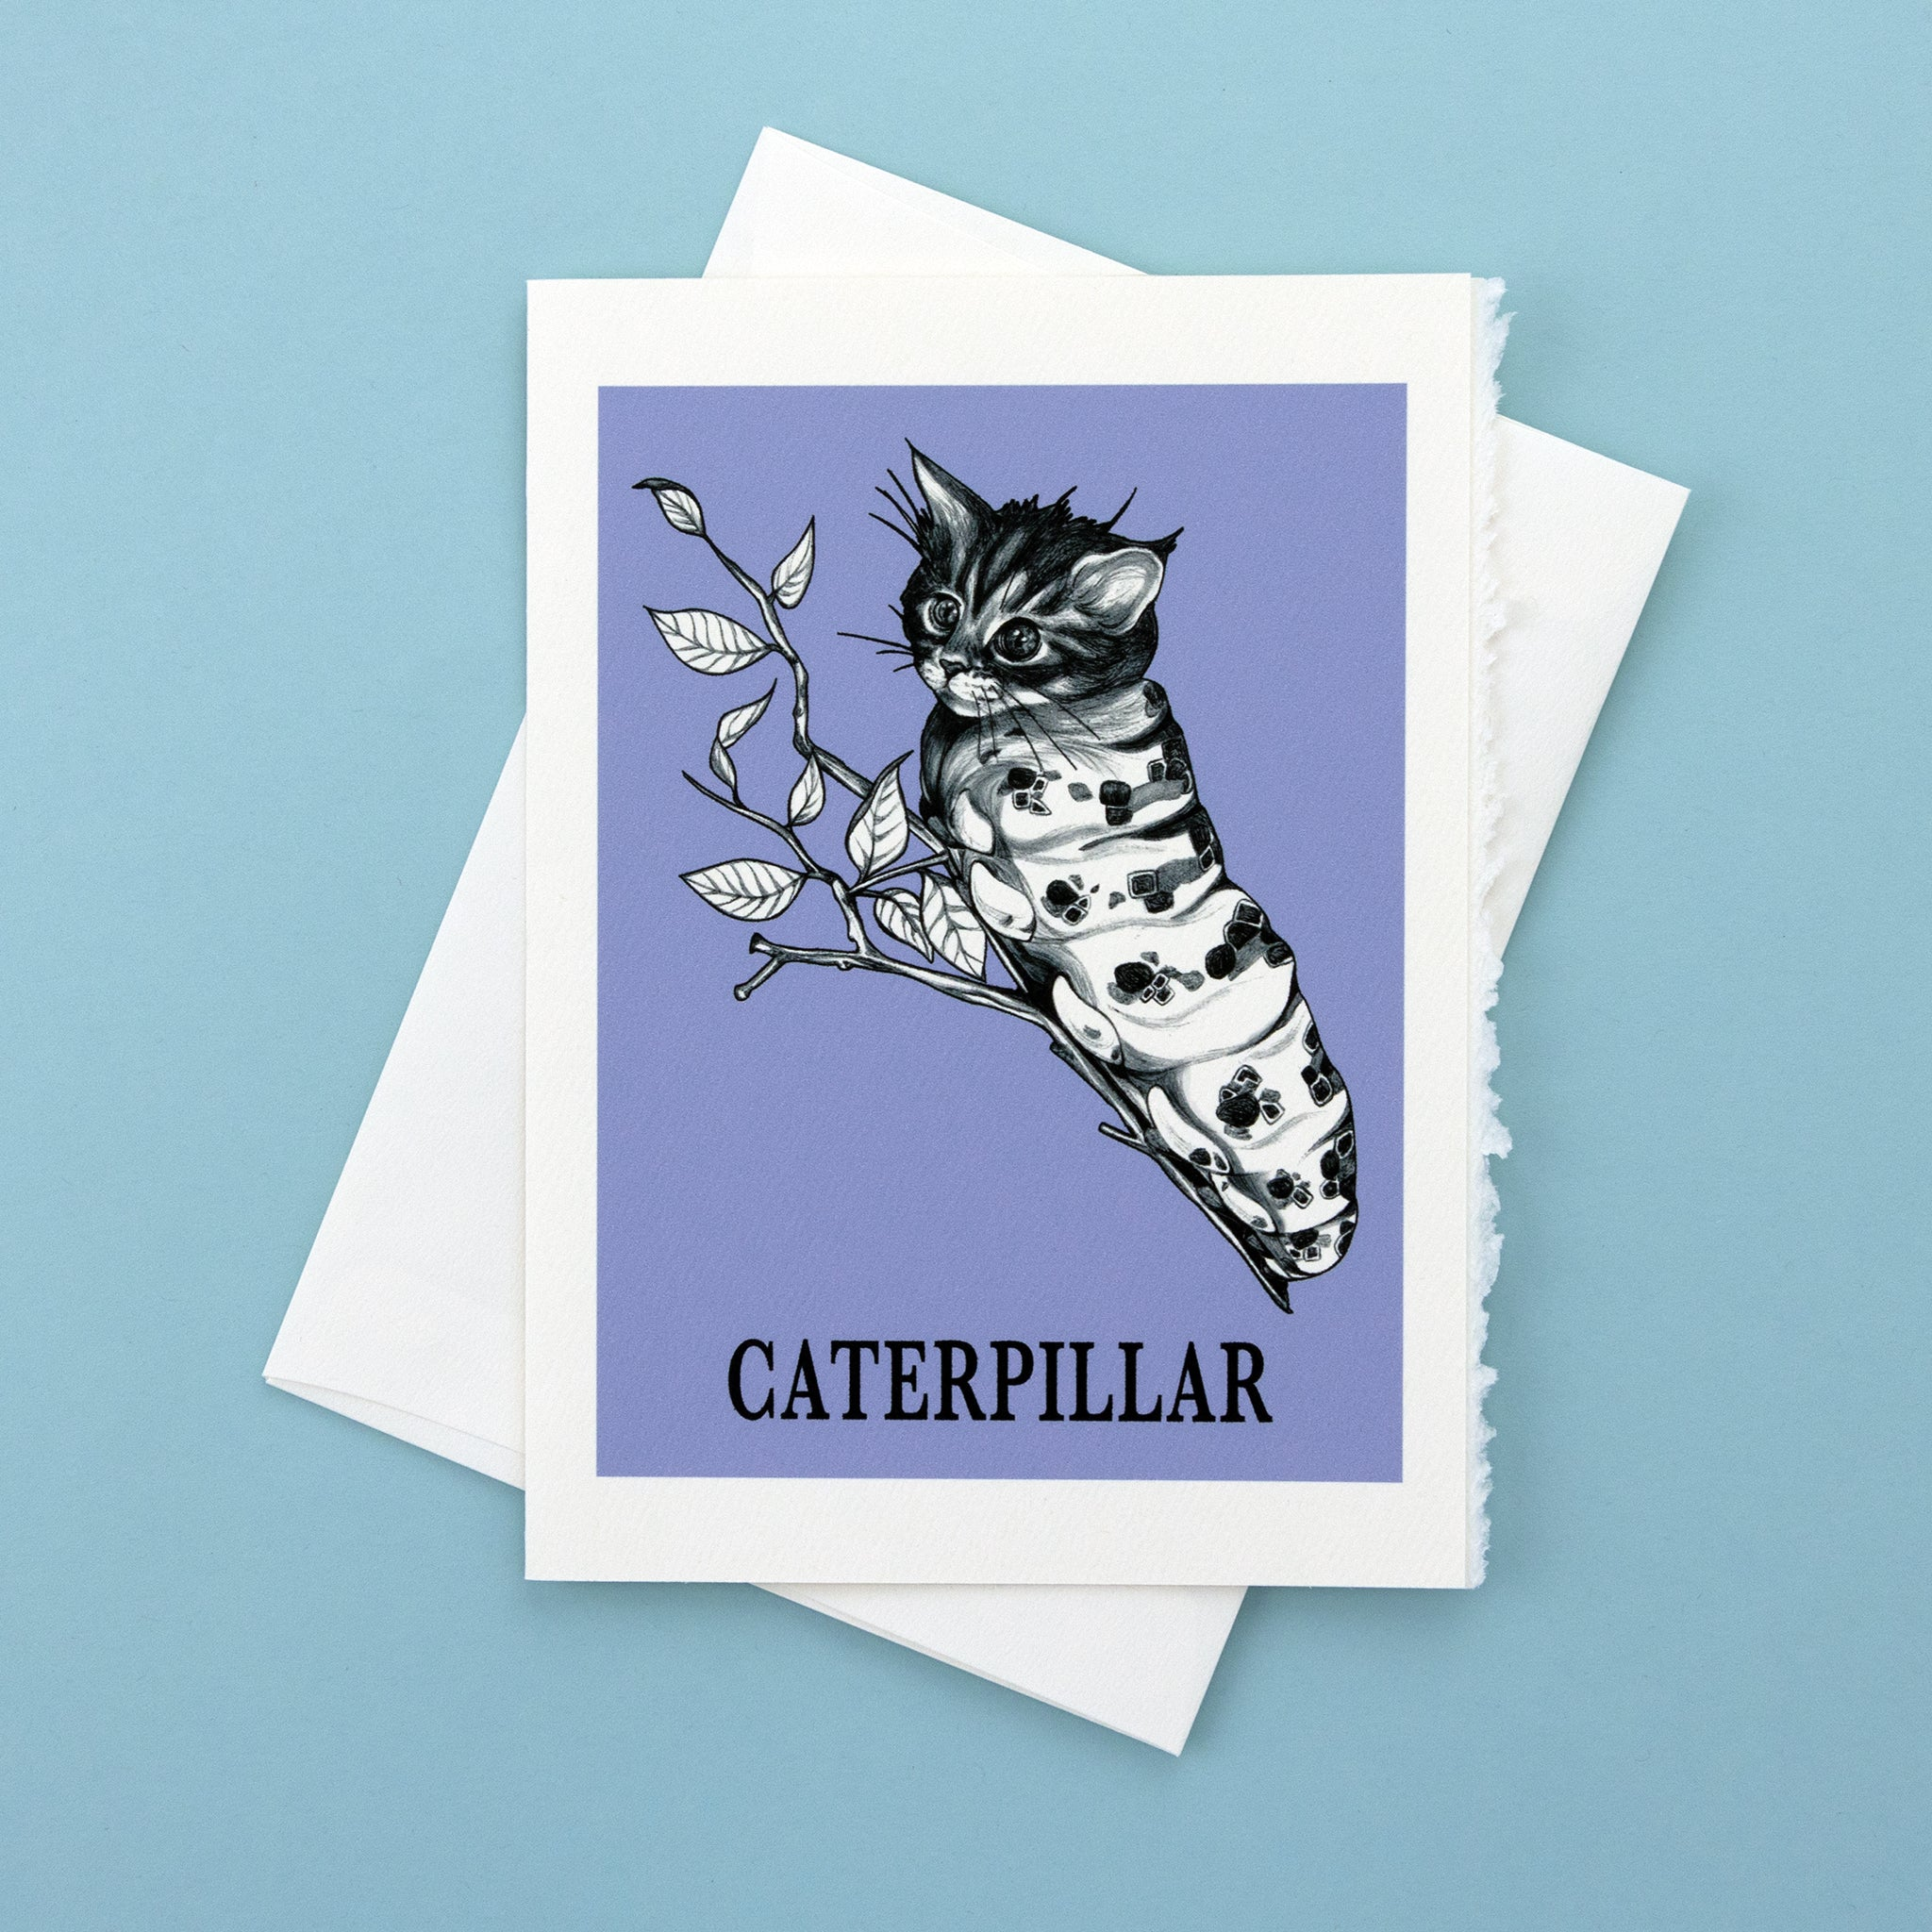 "Caterpillar 5x7"" Greeting Card"